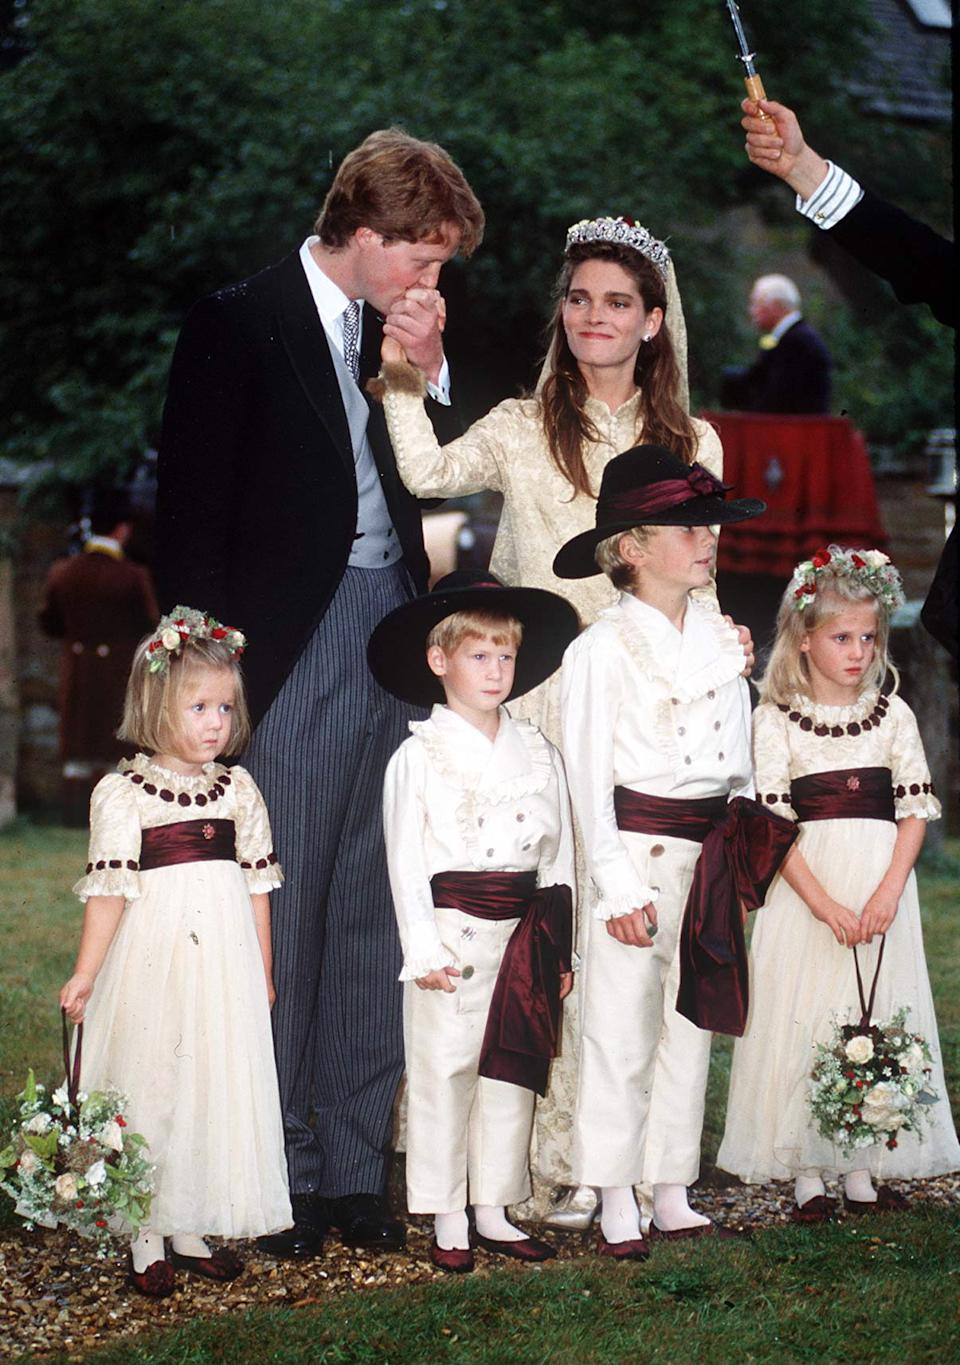 GREAT BRINGTON, UNITED KINGDOM - SEPTEMBER 16:  Viscount Althorp (charles Spencer) Kissing The Hand Of Bride, Victoria Lockwood. Bridesmaids And Pageboys (l To R)  Eleanor Fellowes, Prince Harry, Alexander Fellowes  Emily Mccorquodale.wedding Outfit By Tomasz Starzewski  (Photo by Tim Graham Photo Library via Getty Images)